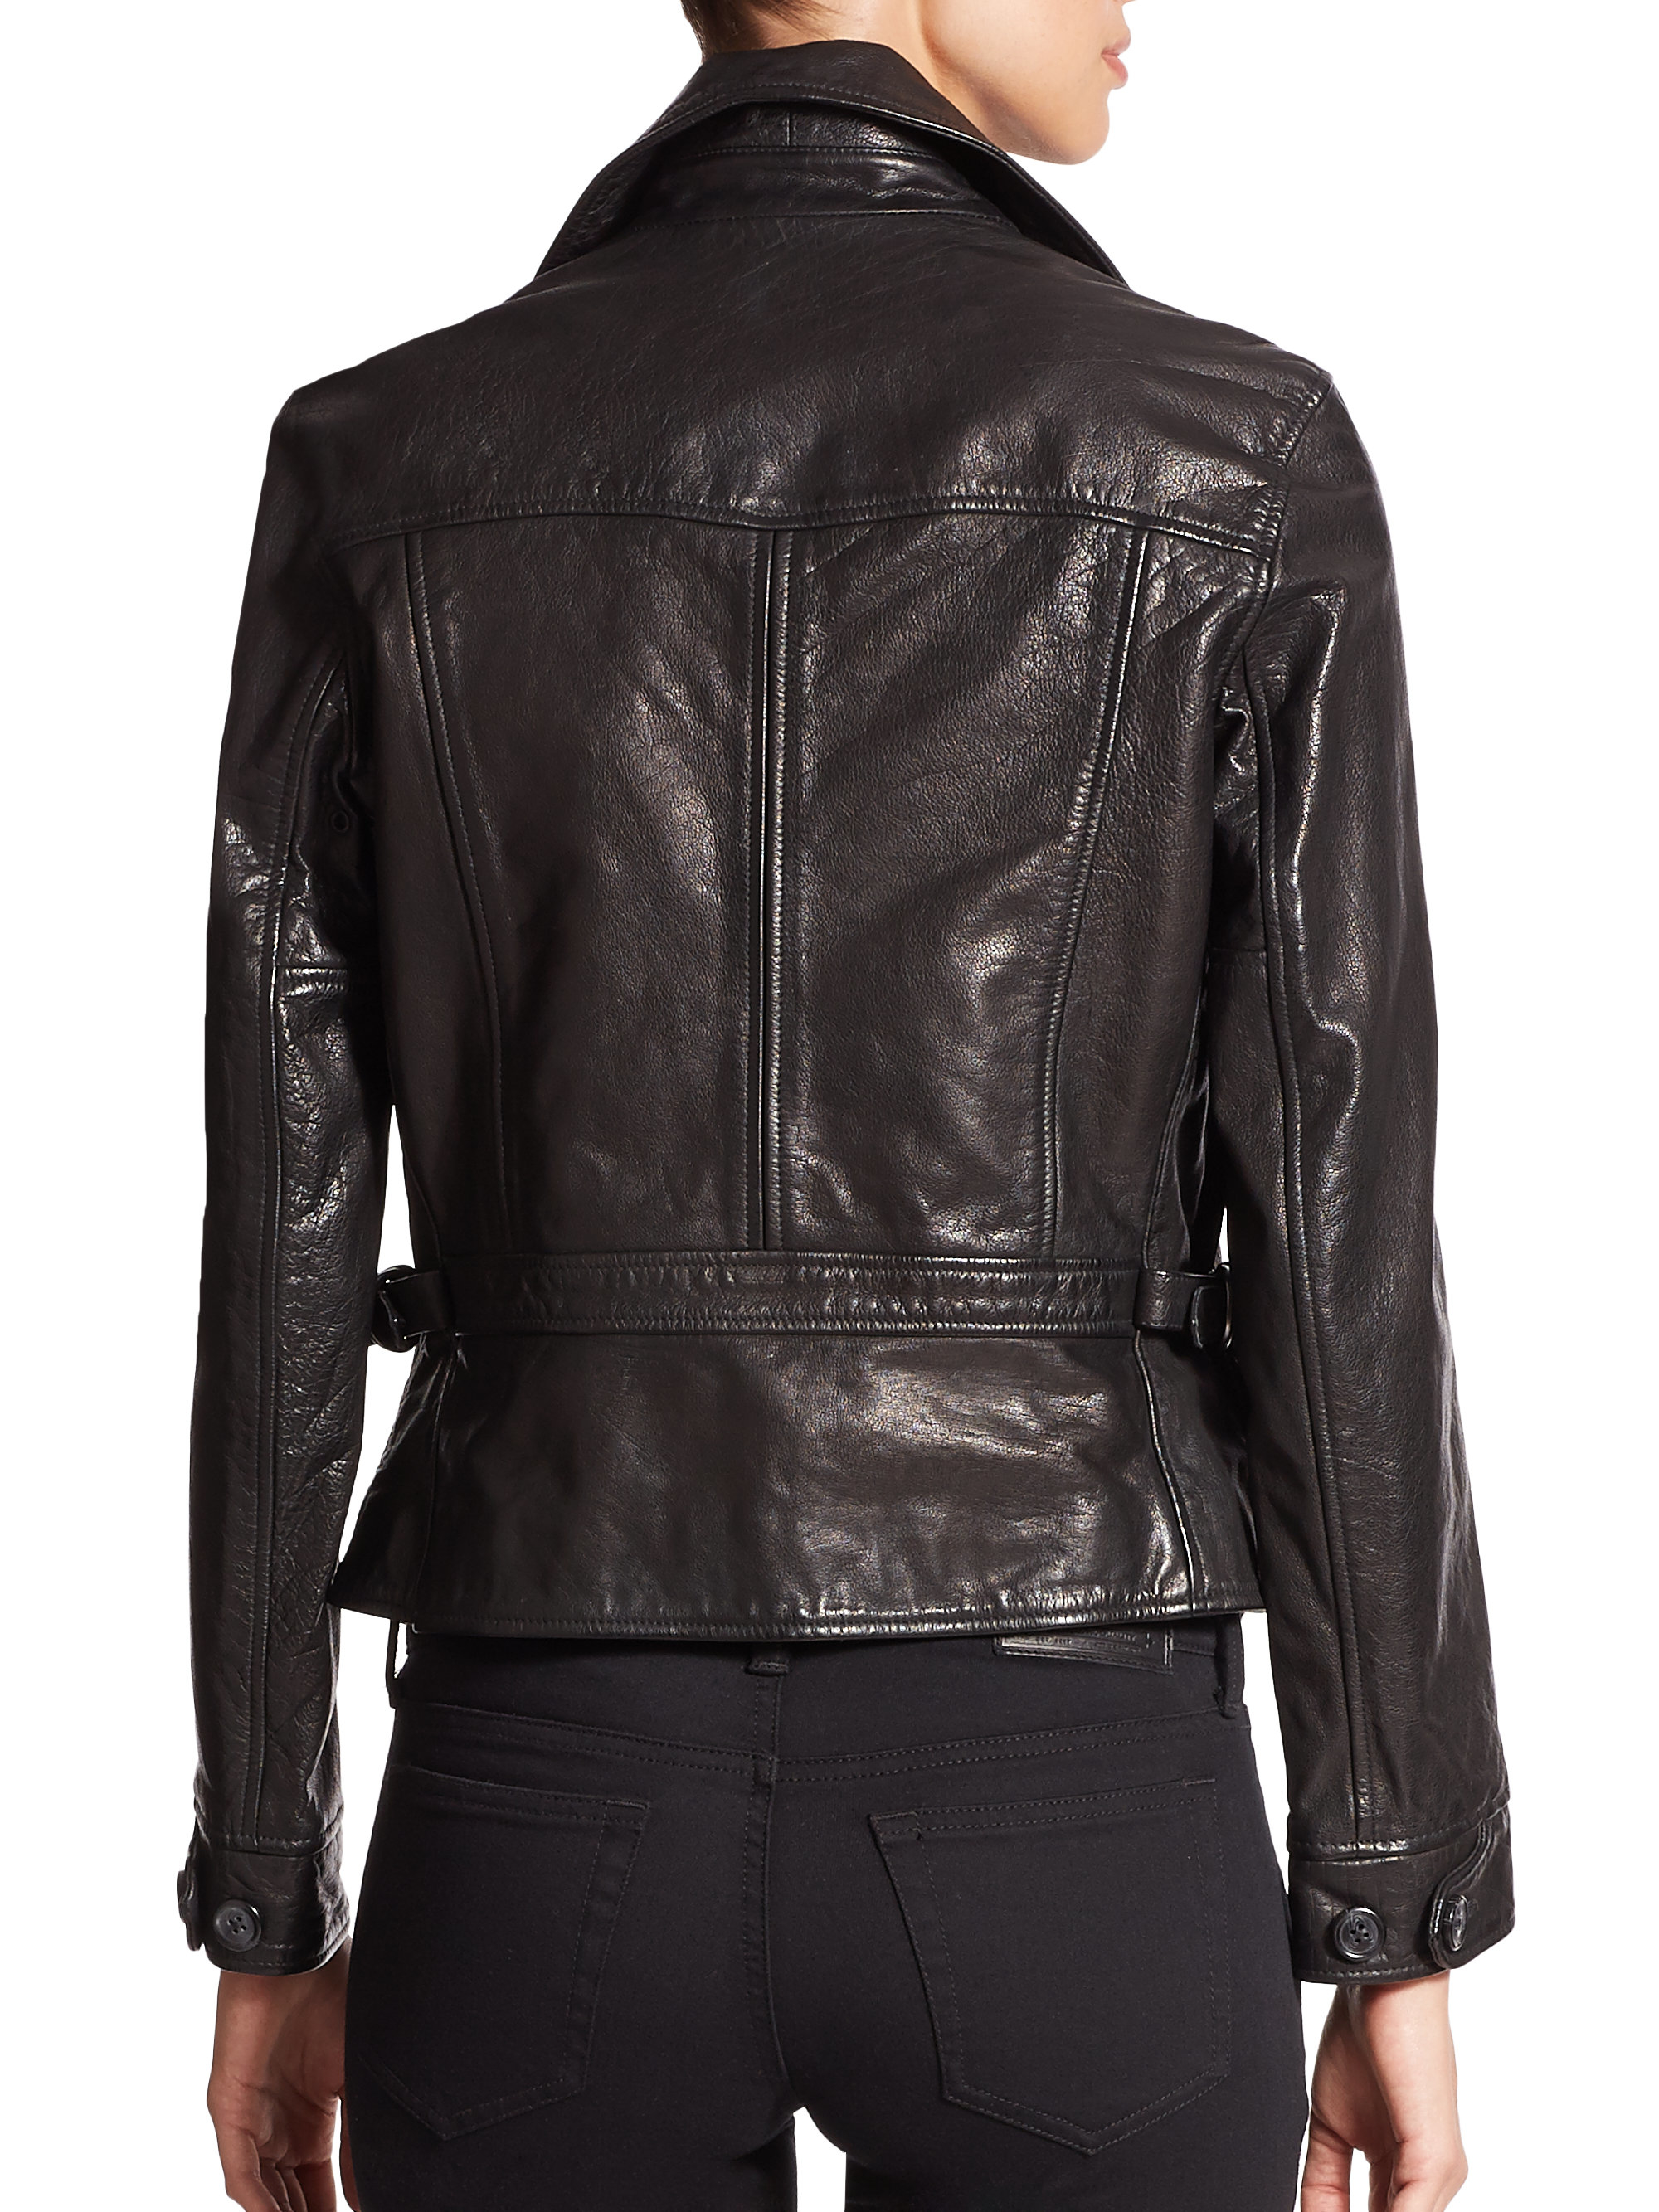 Lyst - Polo Ralph Lauren Washed Leather Moto Jacket In Black